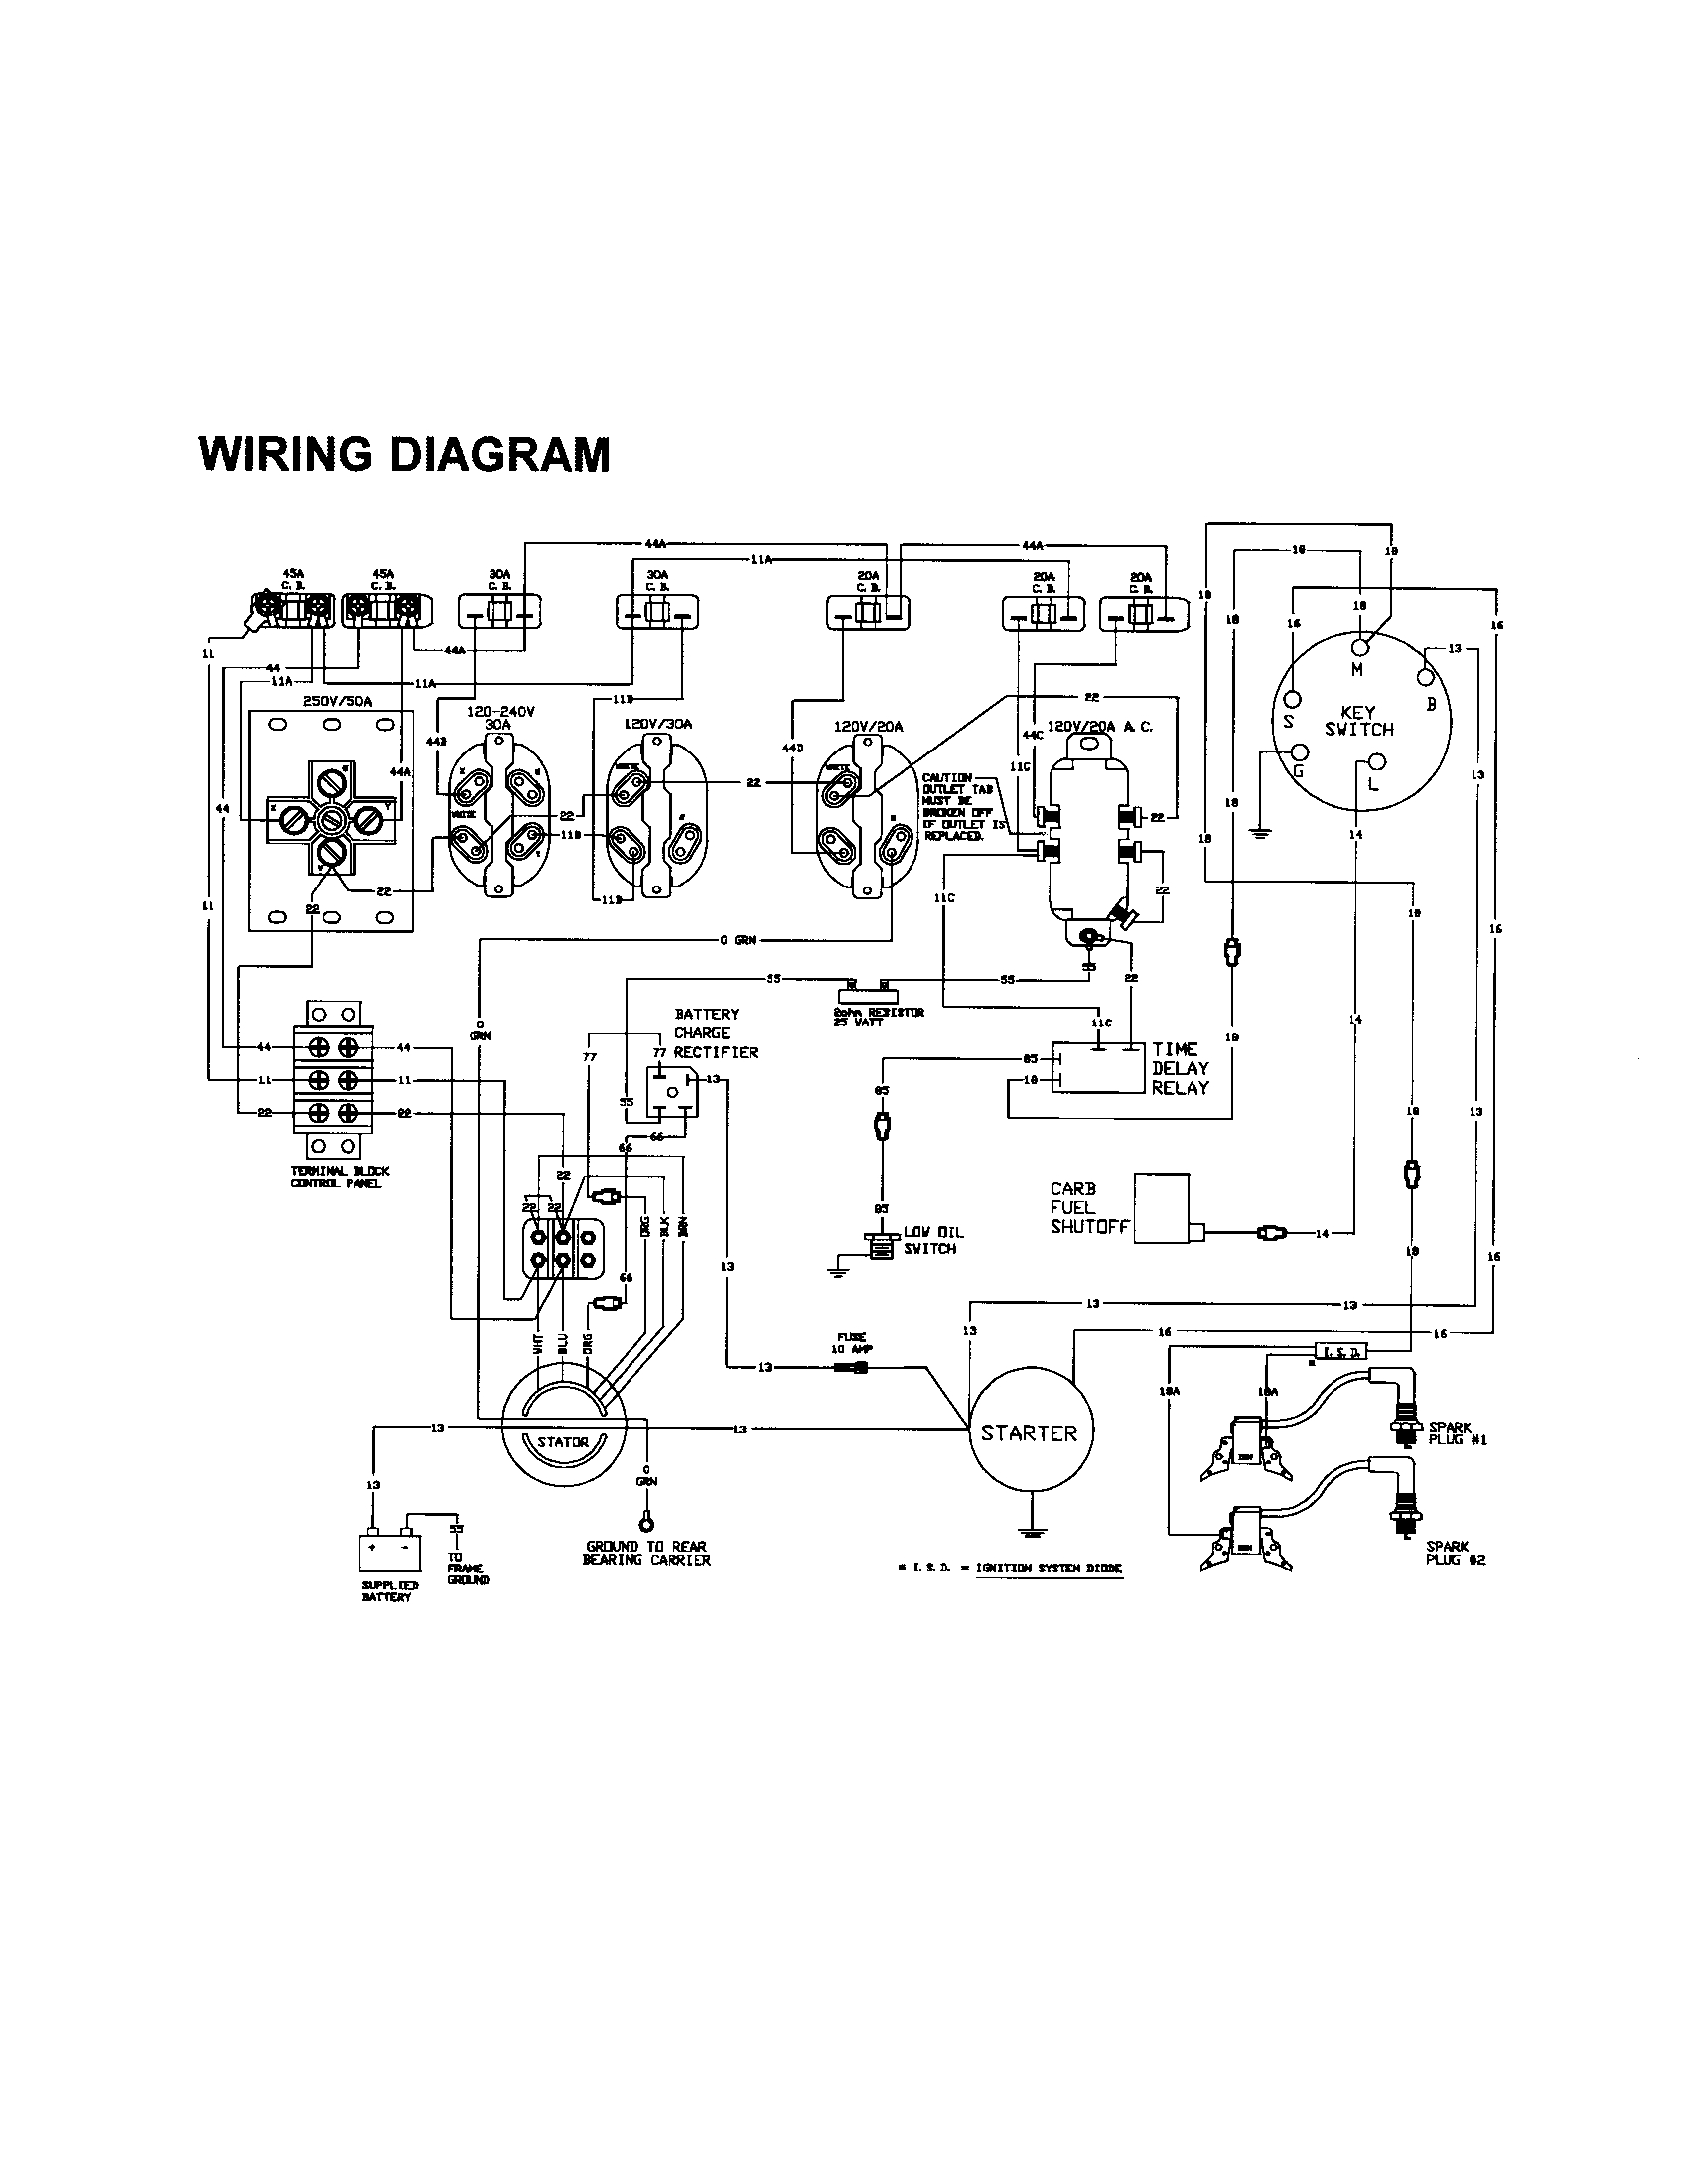 Generac 6500E Generator Wiring Diagram | Manual E-Books - Generac Generator Wiring Diagram